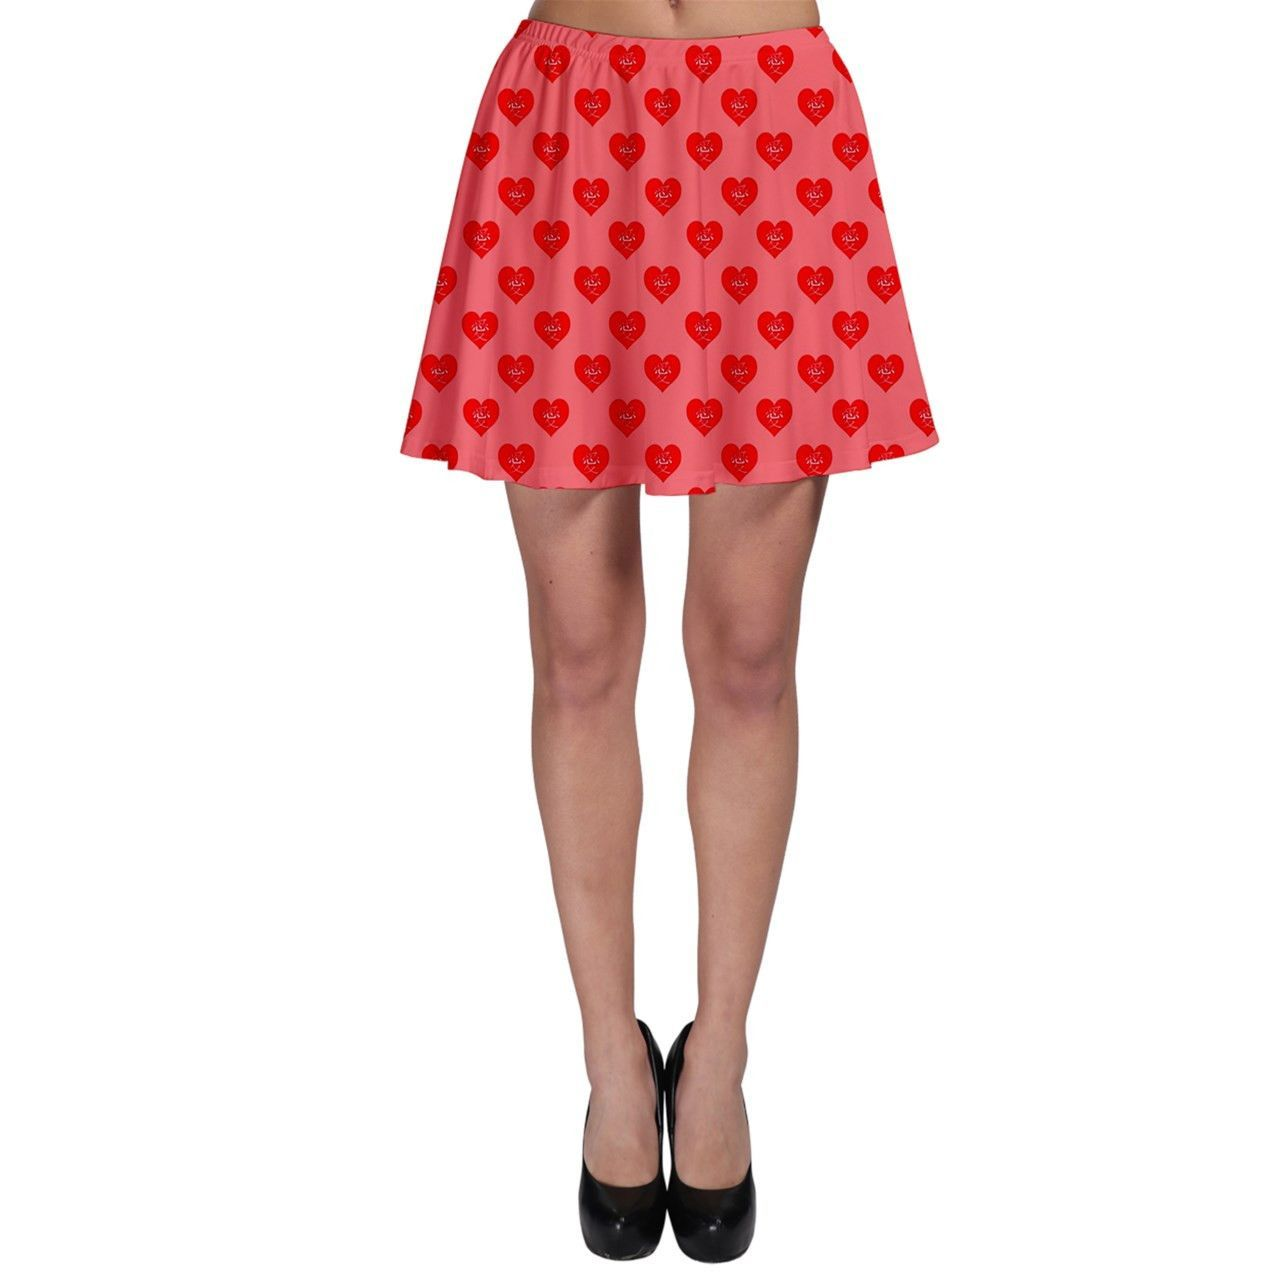 Chinese Loving Hearts Skater Skirt 5 Colors